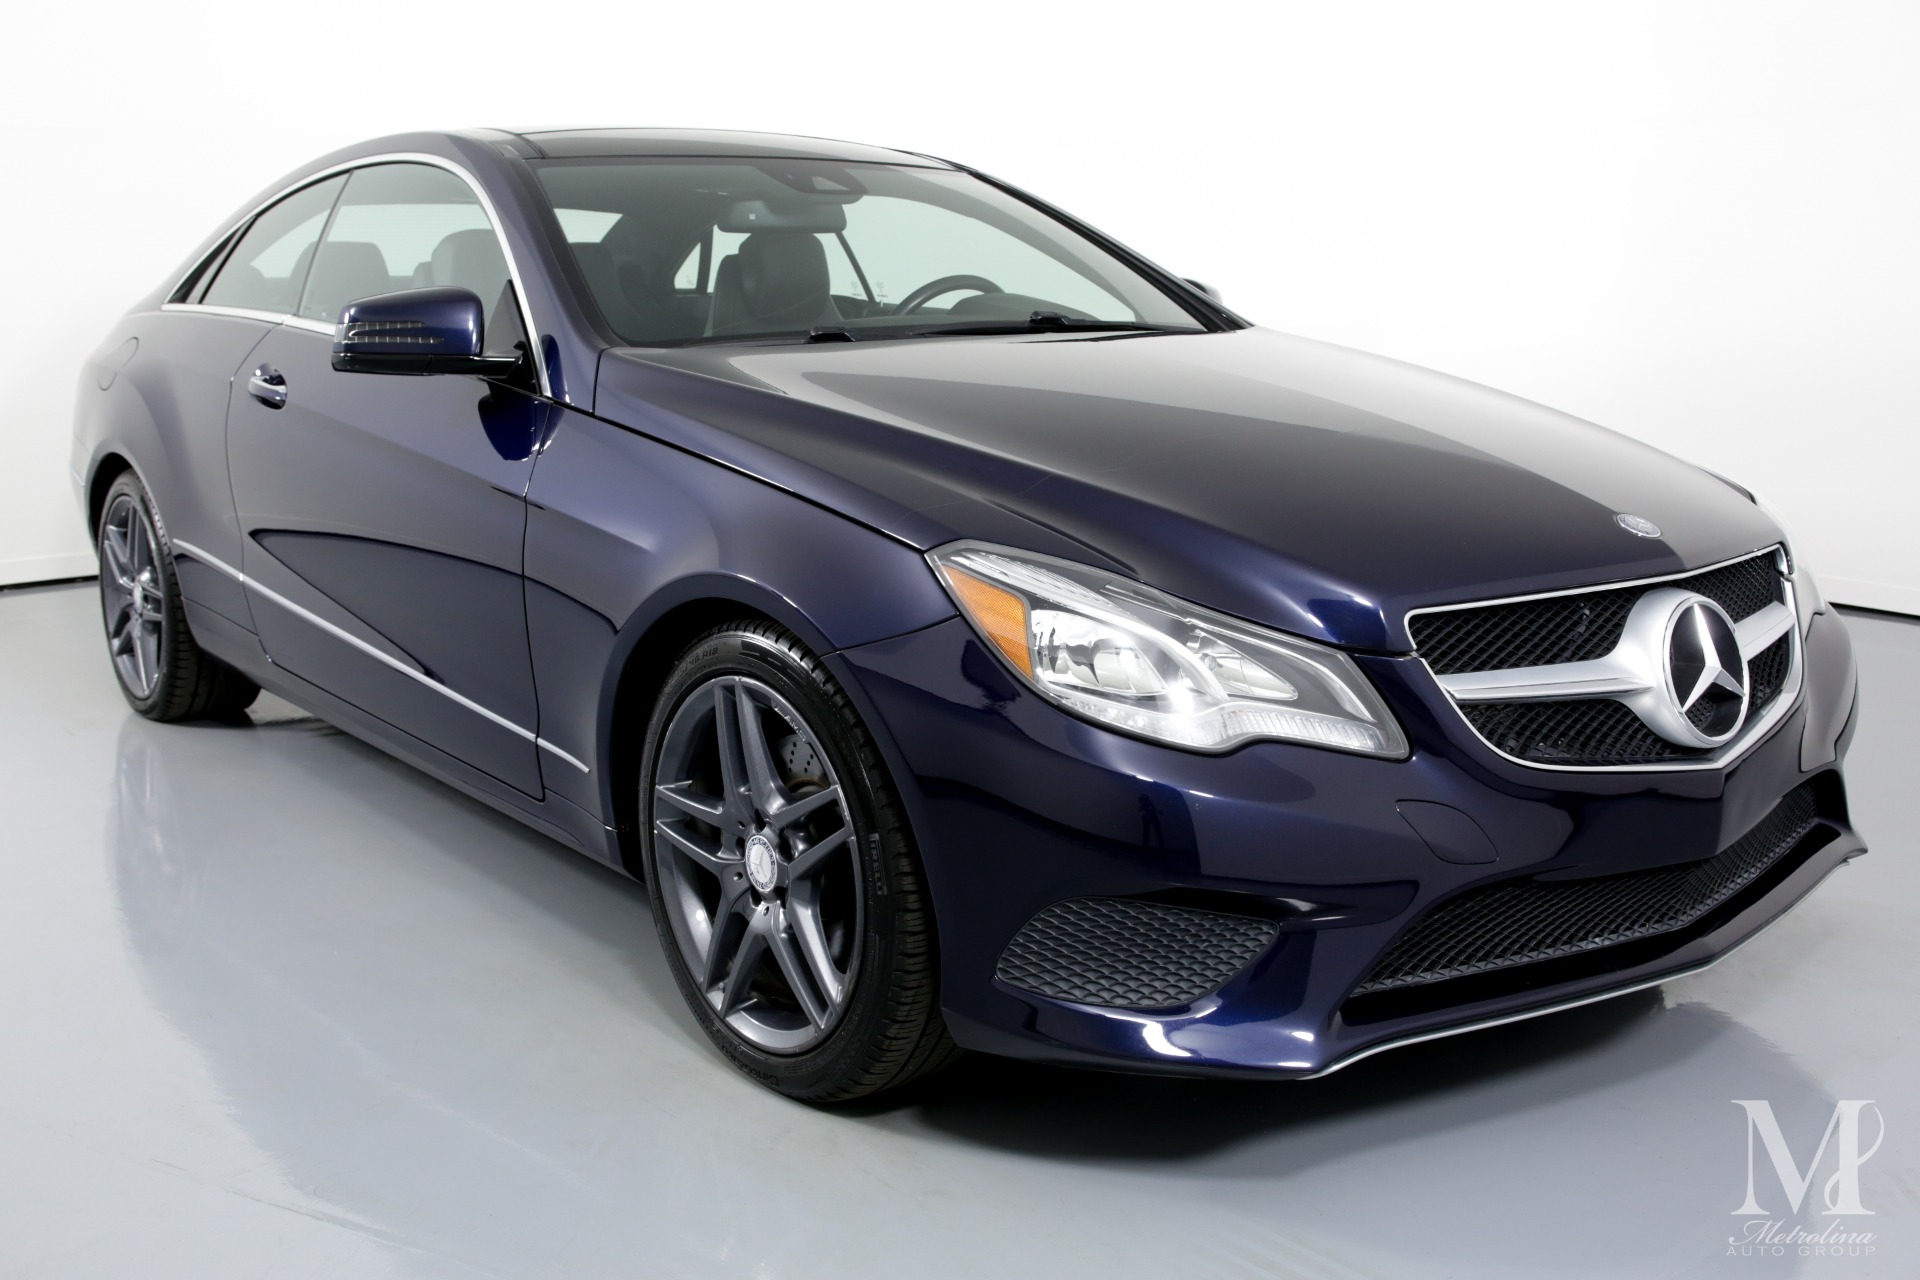 Used 2014 Mercedes-Benz E-Class E 350 4MATIC AWD 2dr Coupe for sale $21,750 at Metrolina Auto Group in Charlotte NC 28217 - 2